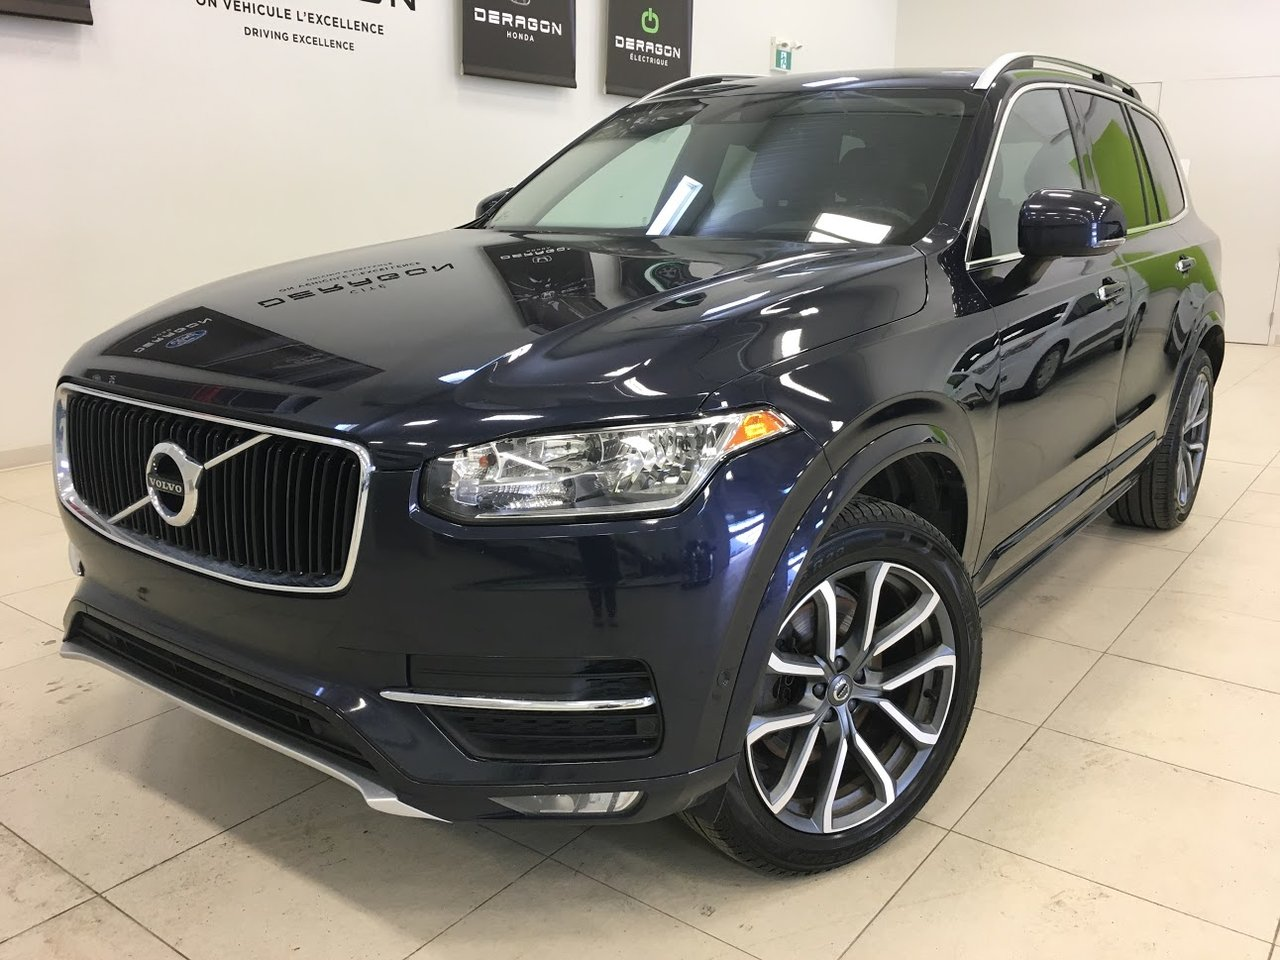 2017 Volvo  XC90 T6 MOMENTUM, CLIMATE PACKAGE, CONVENIENCE PAC